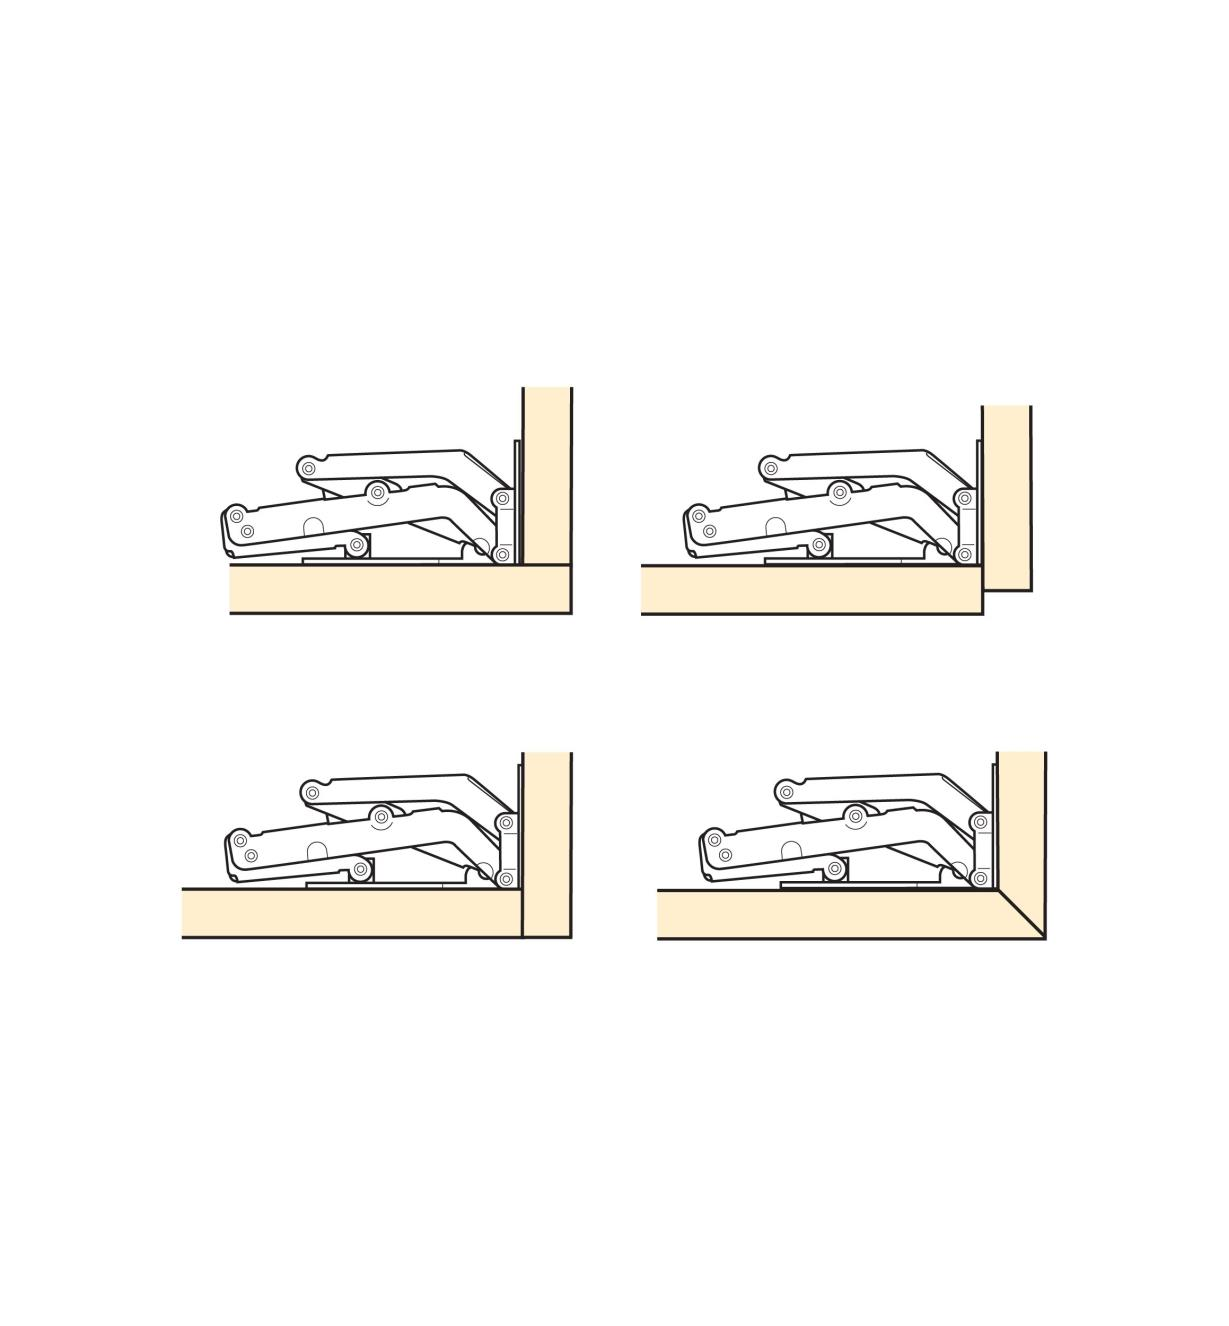 Diagrams of hinges used four different ways